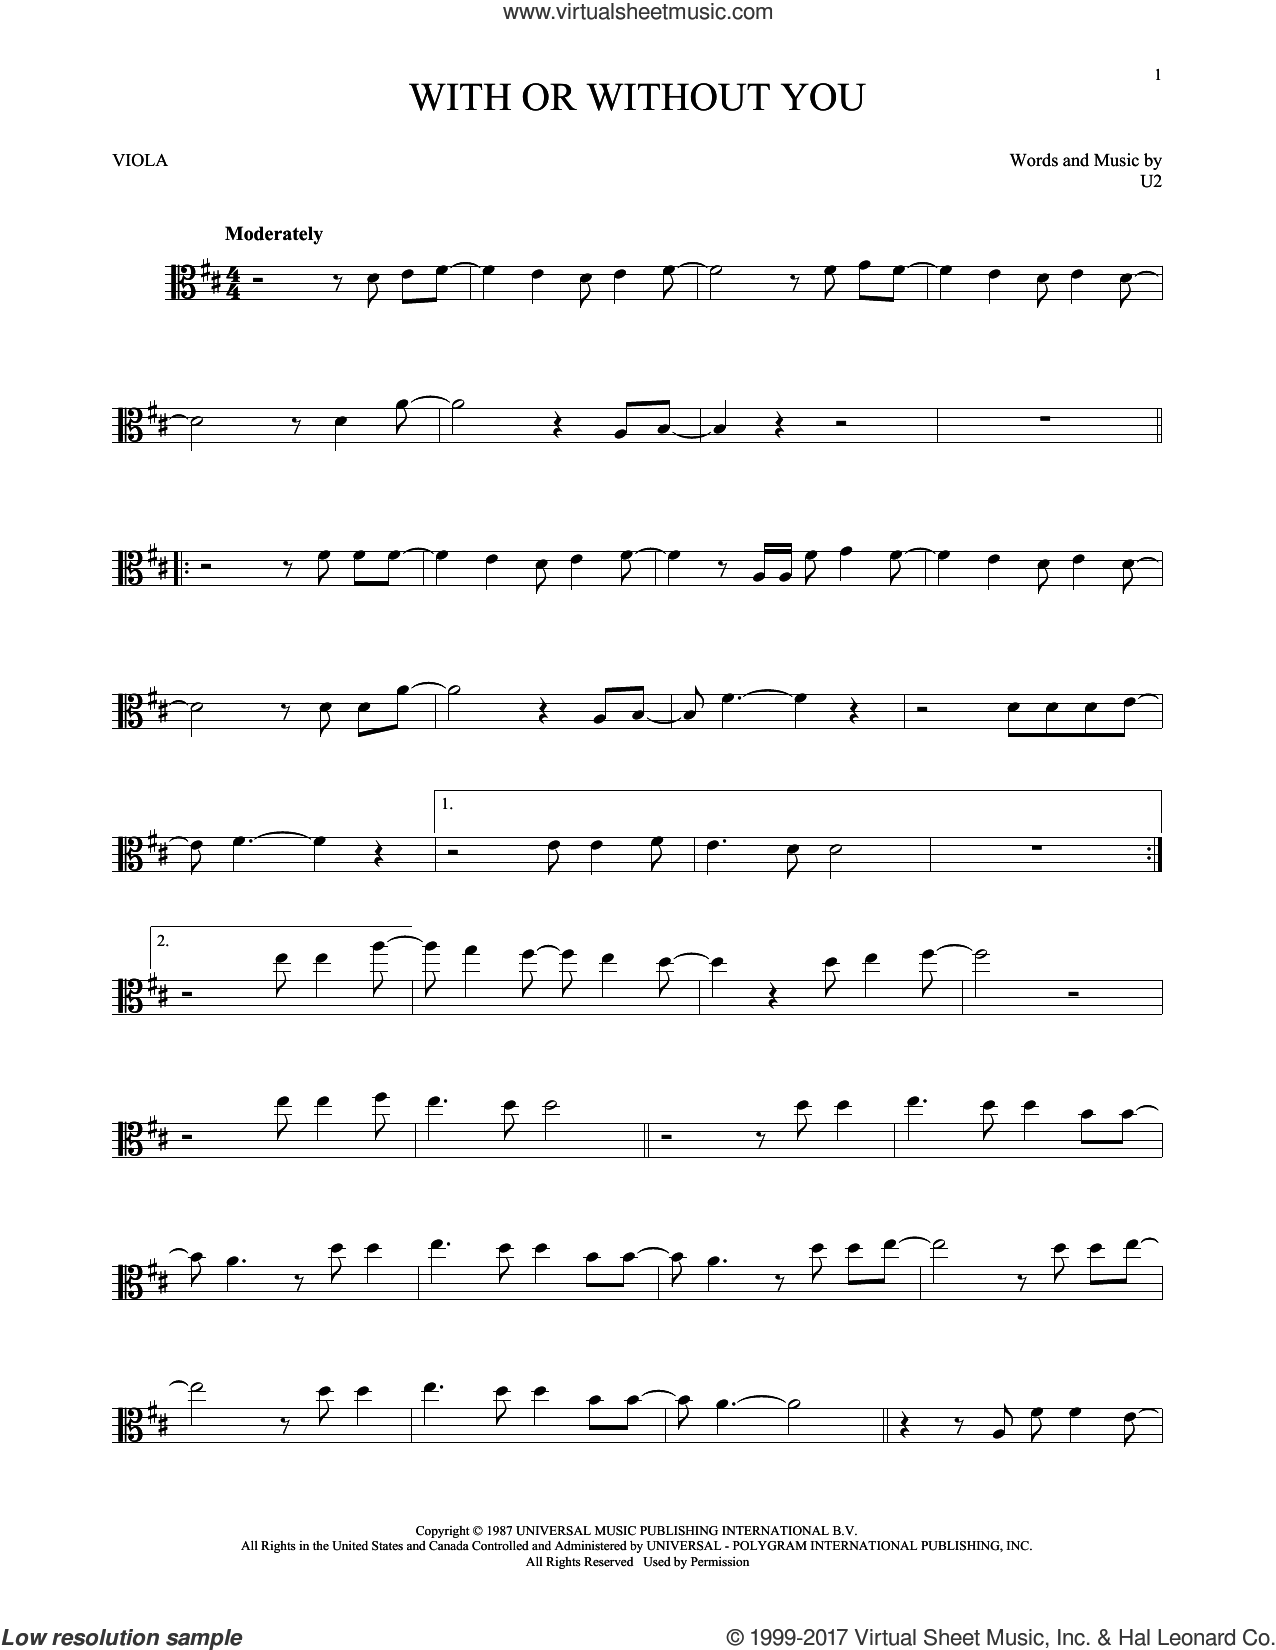 With Or Without You sheet music for viola solo by U2, intermediate skill level